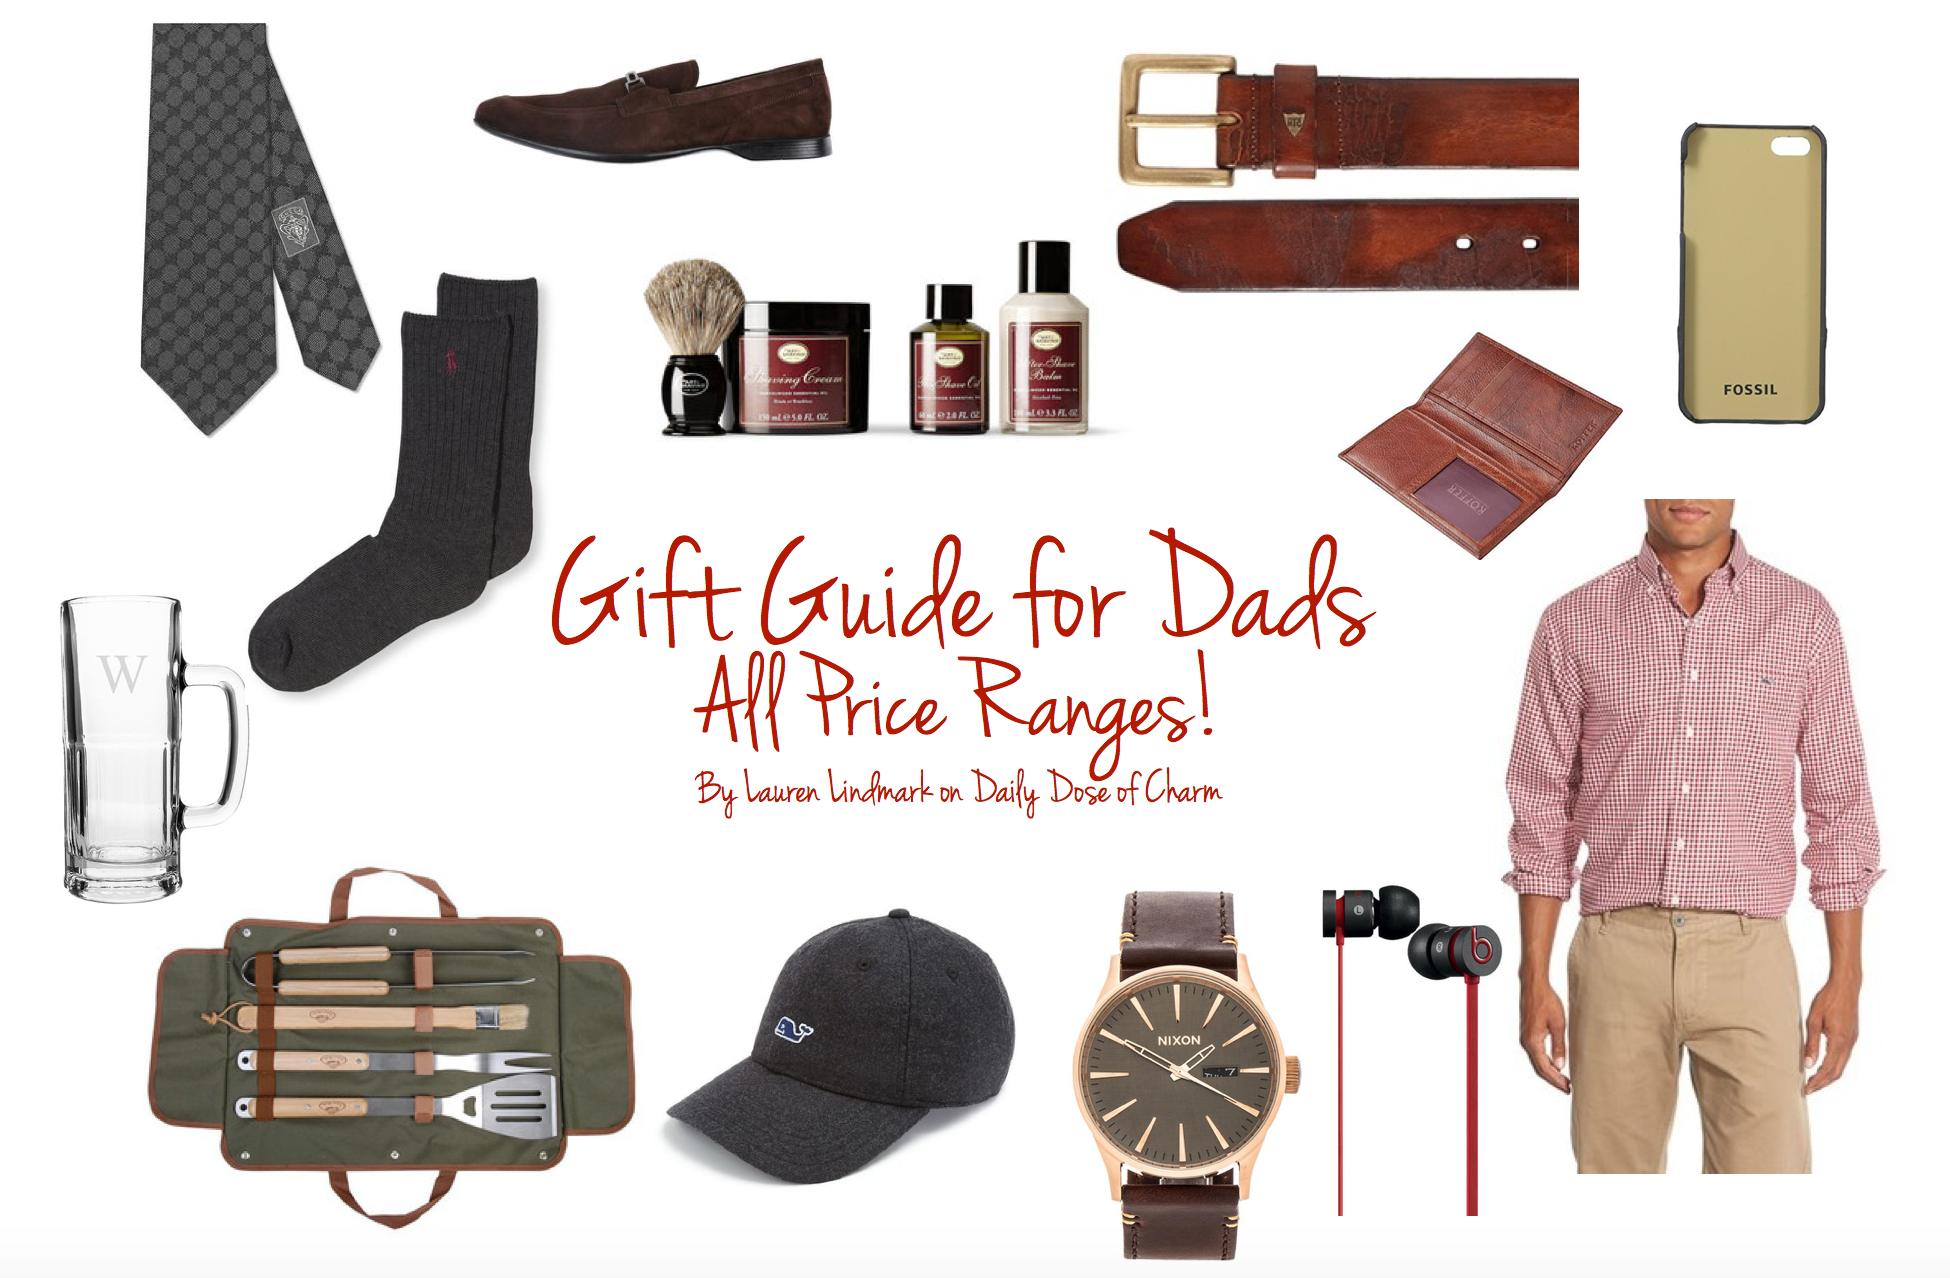 Gift Guide for Dads | Christmas Edition (Prices ranging from Free - $100+)